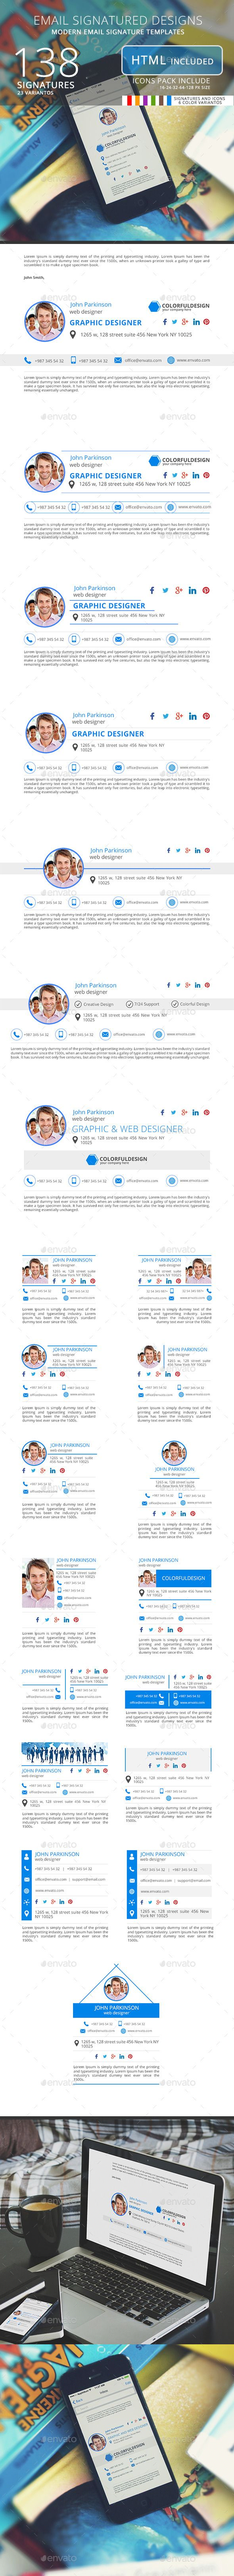 Email Signature  PSD Template • Download ➝ https://graphicriver.net/item/email-signature-templates/13021252?ref=pxcr